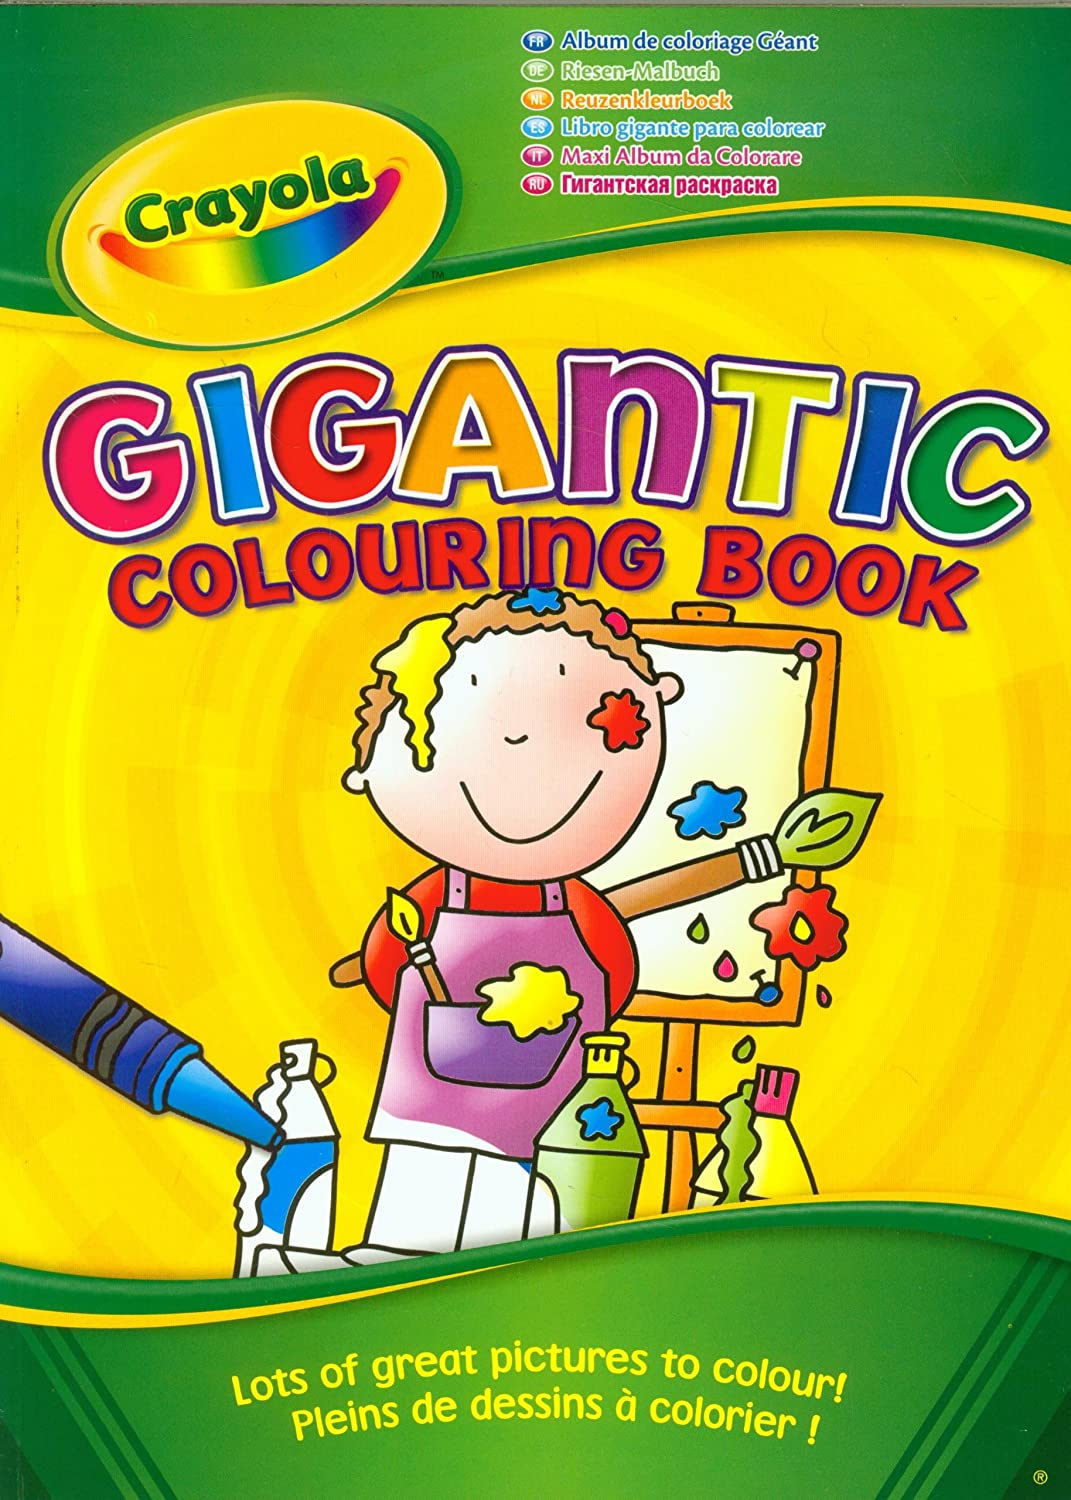 Crayola Gigantic 130 Page A4 Colouring Book: Amazon.co.uk: Toys & Games